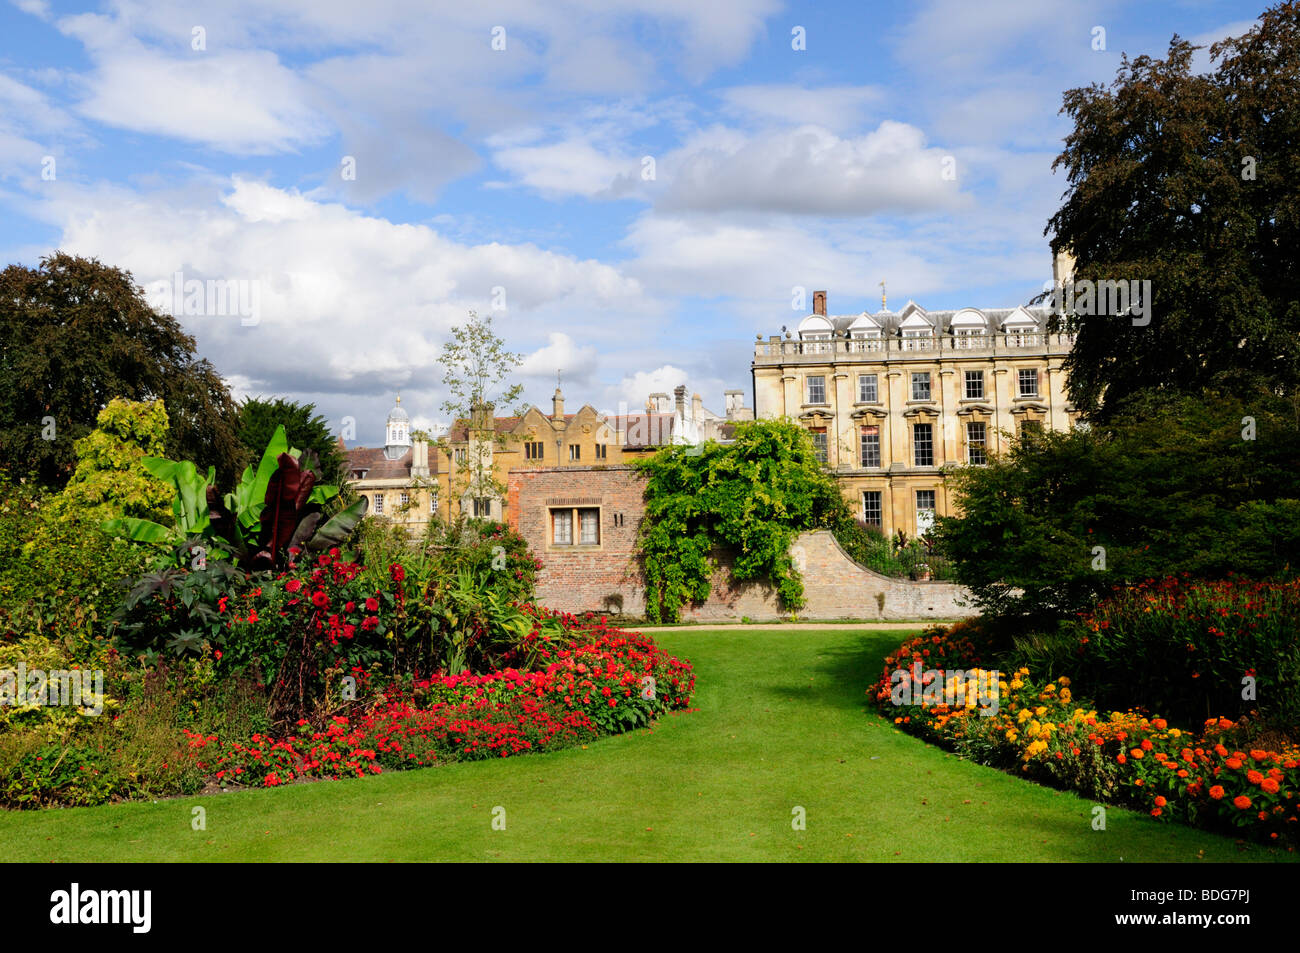 Fellows garden at Clare College Cambridge England UK - Stock Image